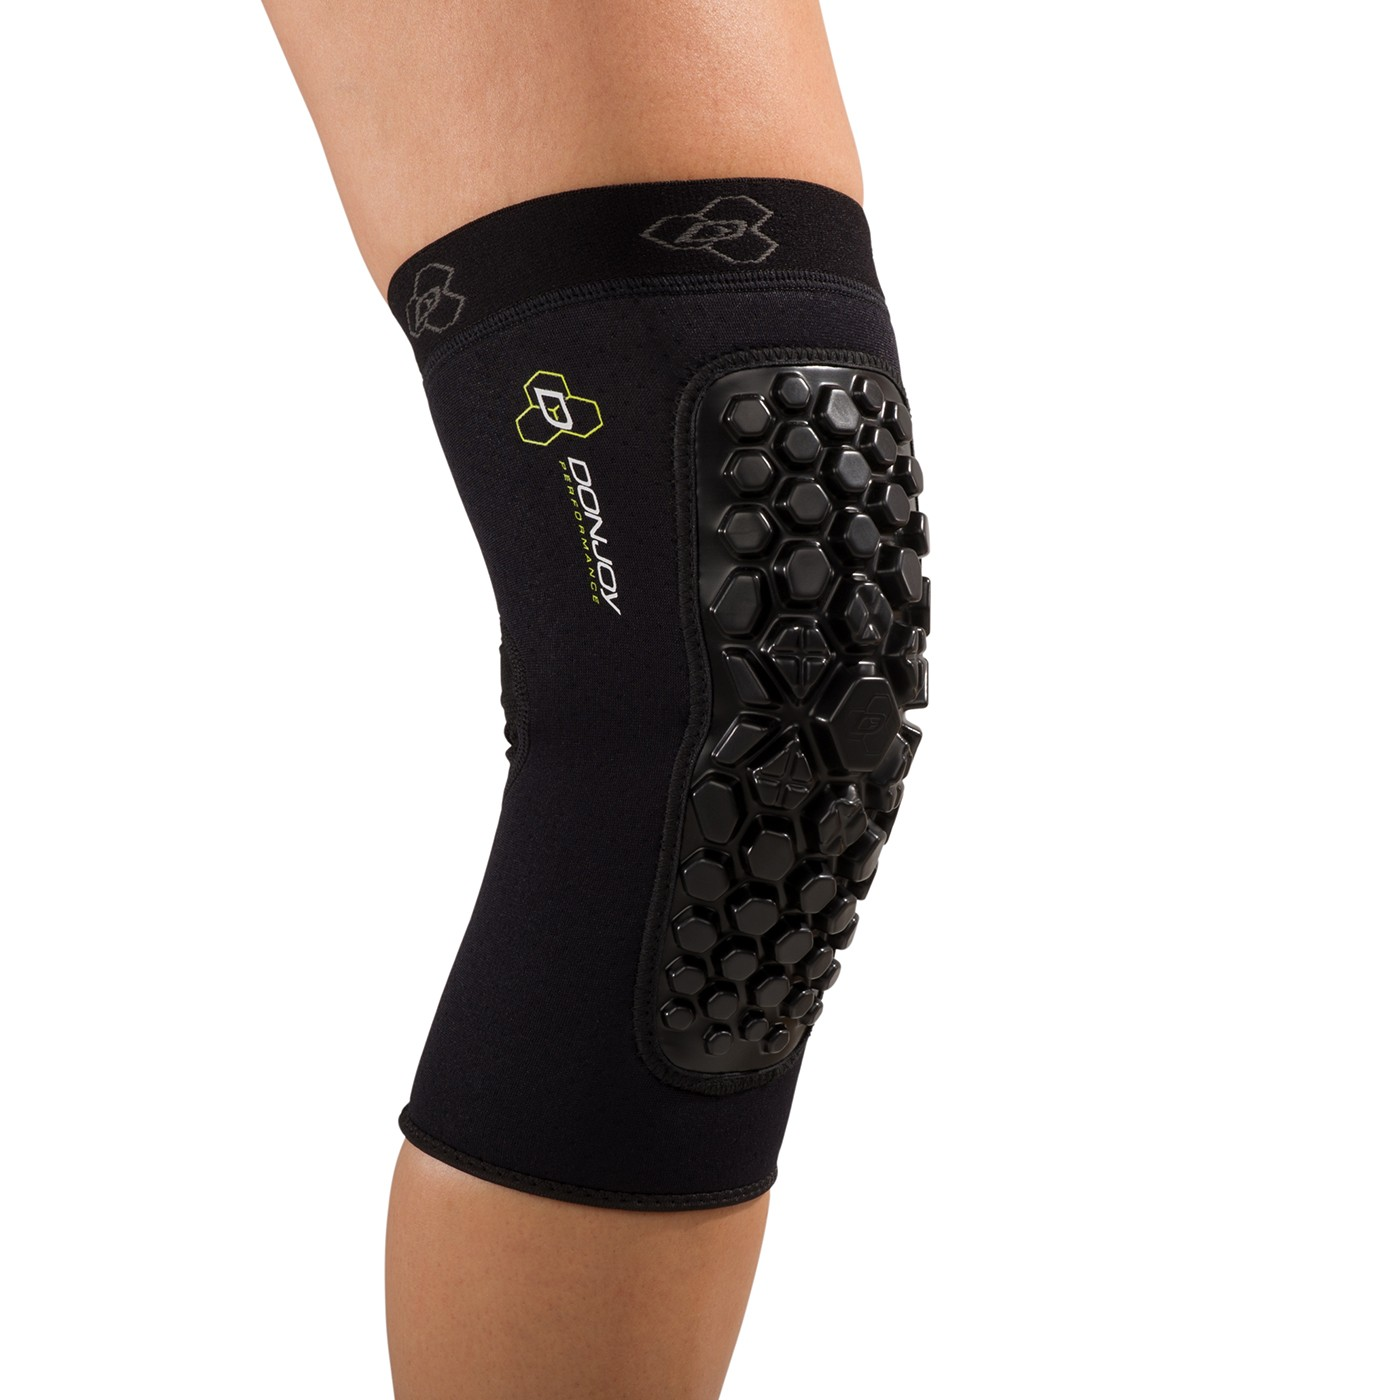 Football Knee Braces Acl Support For Football Players